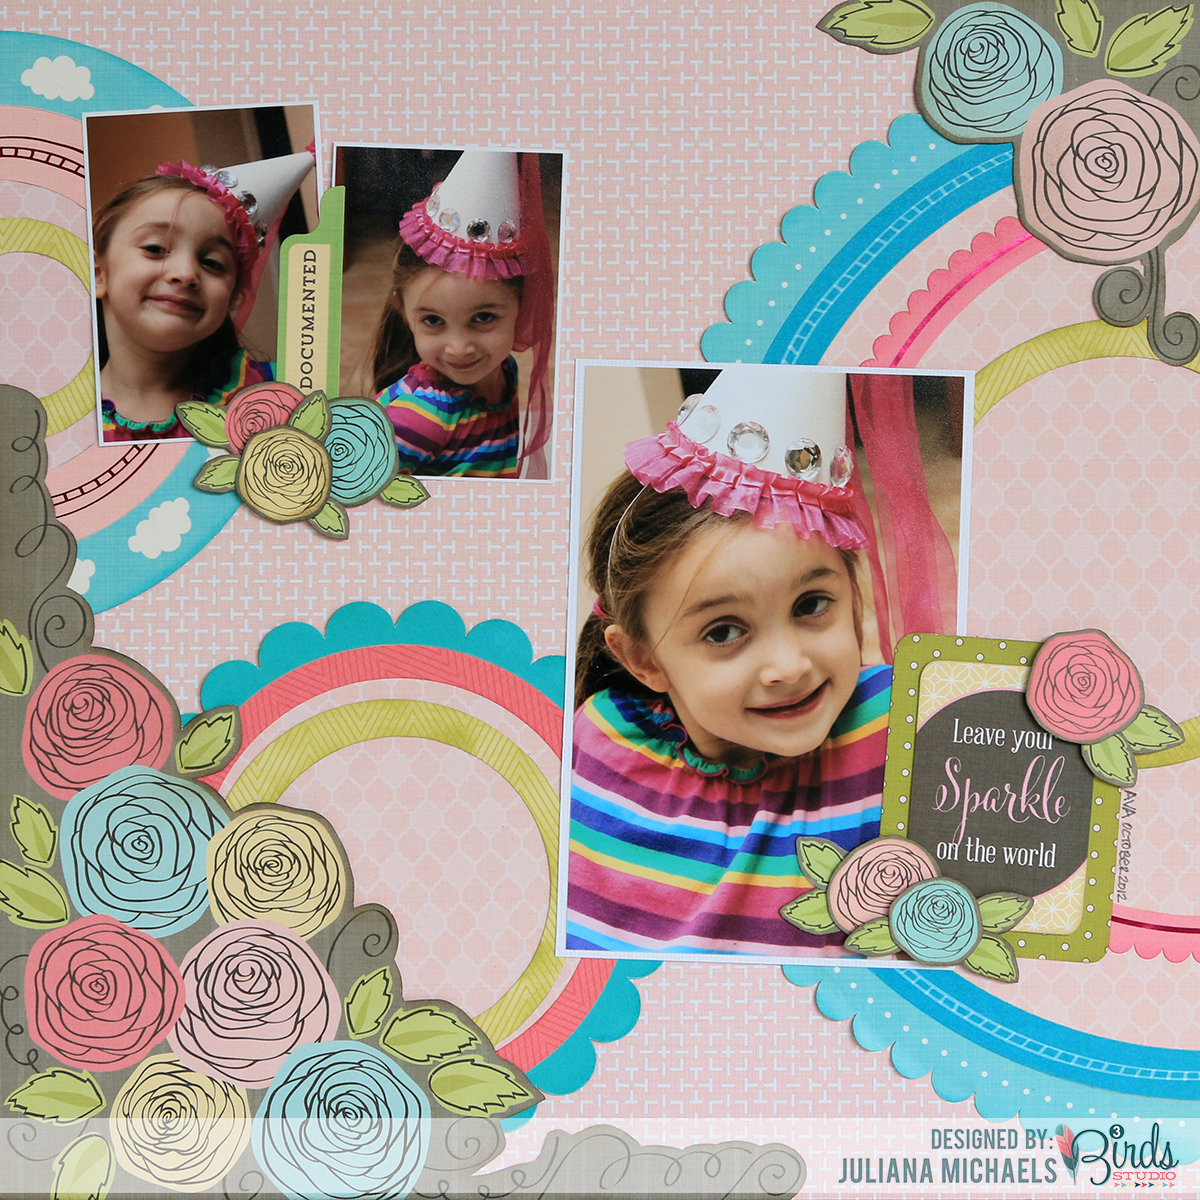 http://4.bp.blogspot.com/-MhnN9wcL5RA/U96uGwfJVHI/AAAAAAAARgQ/KHYGsfDuL0k/s1600/Leave_Your_Sparkle_Scrapbook_Page_Juliana_Michaels_3_Birds_Design_01.jpg